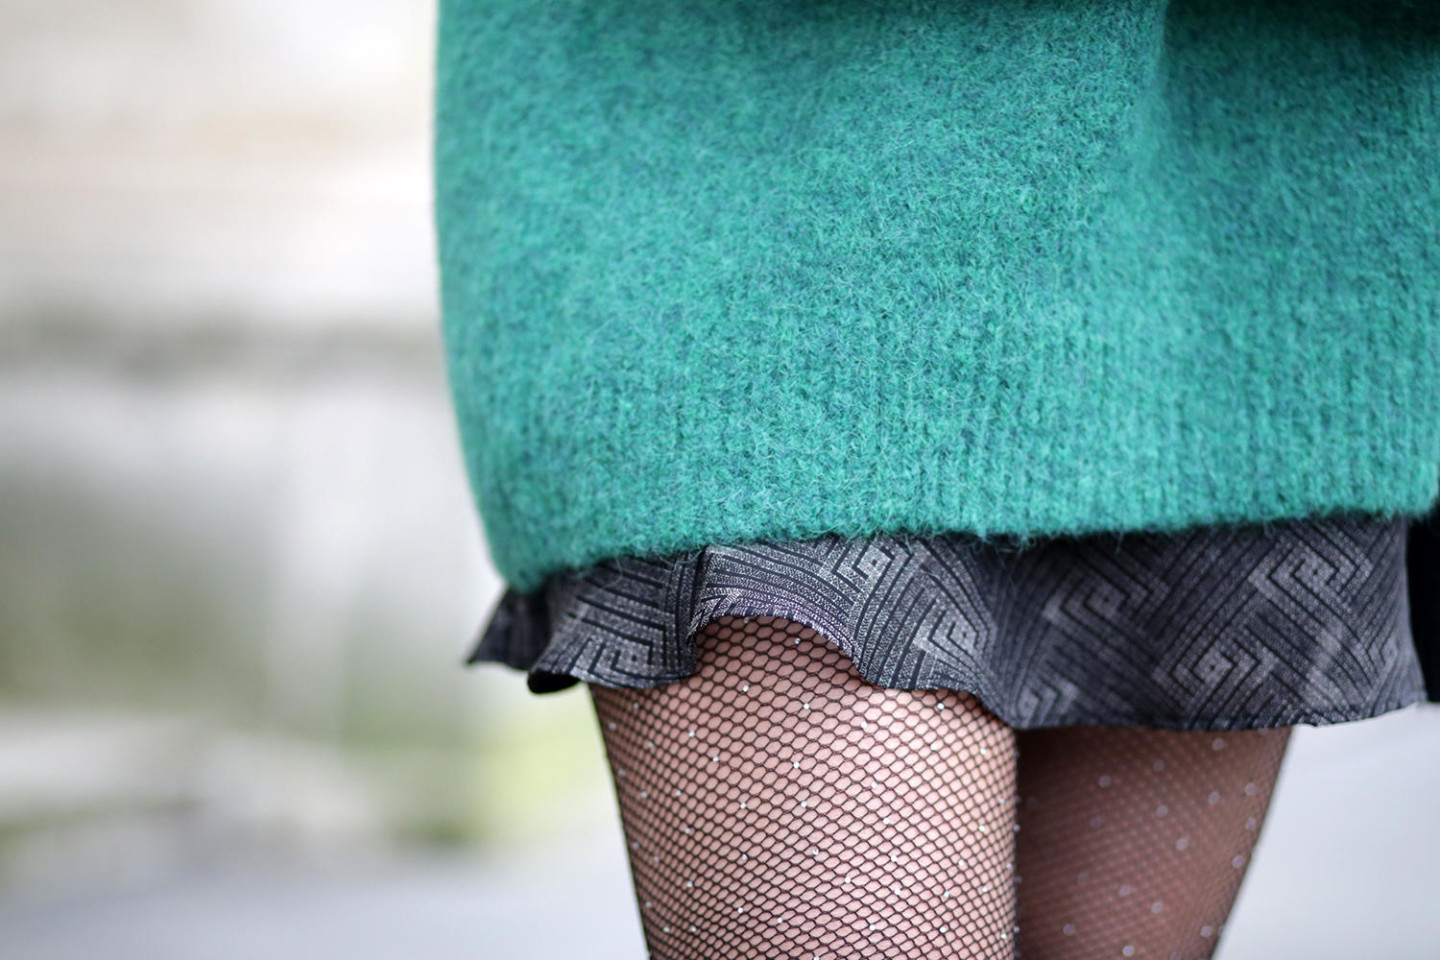 details pull oversize vert-jupe Vanessa Bruno-collant résille strass